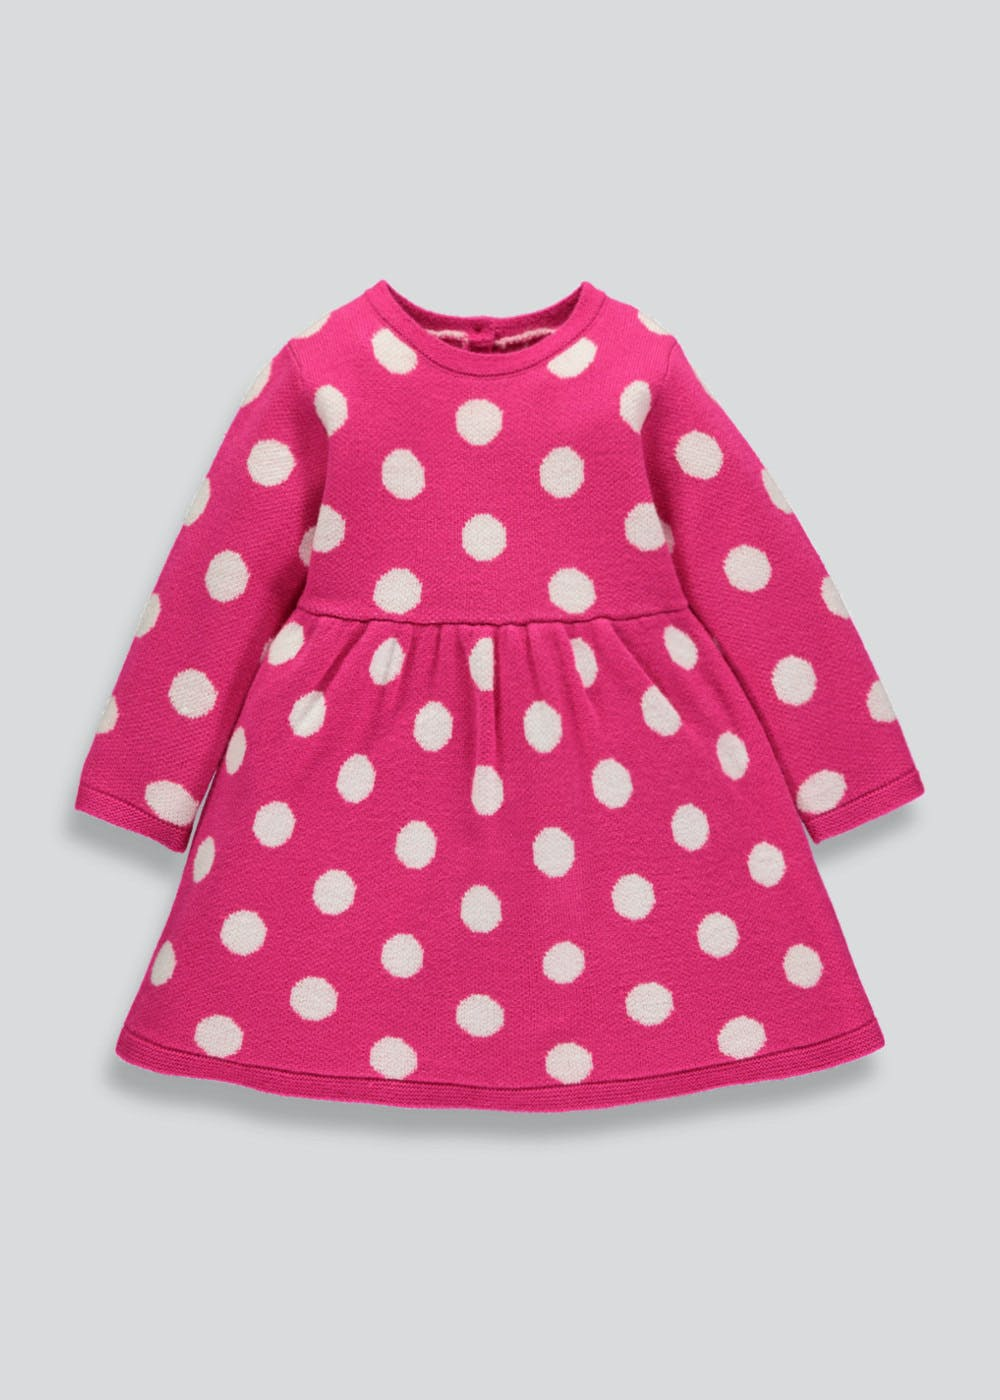 Girls Knitted Polka Dot Dress (3mths-5yrs) – Pink – Matalan